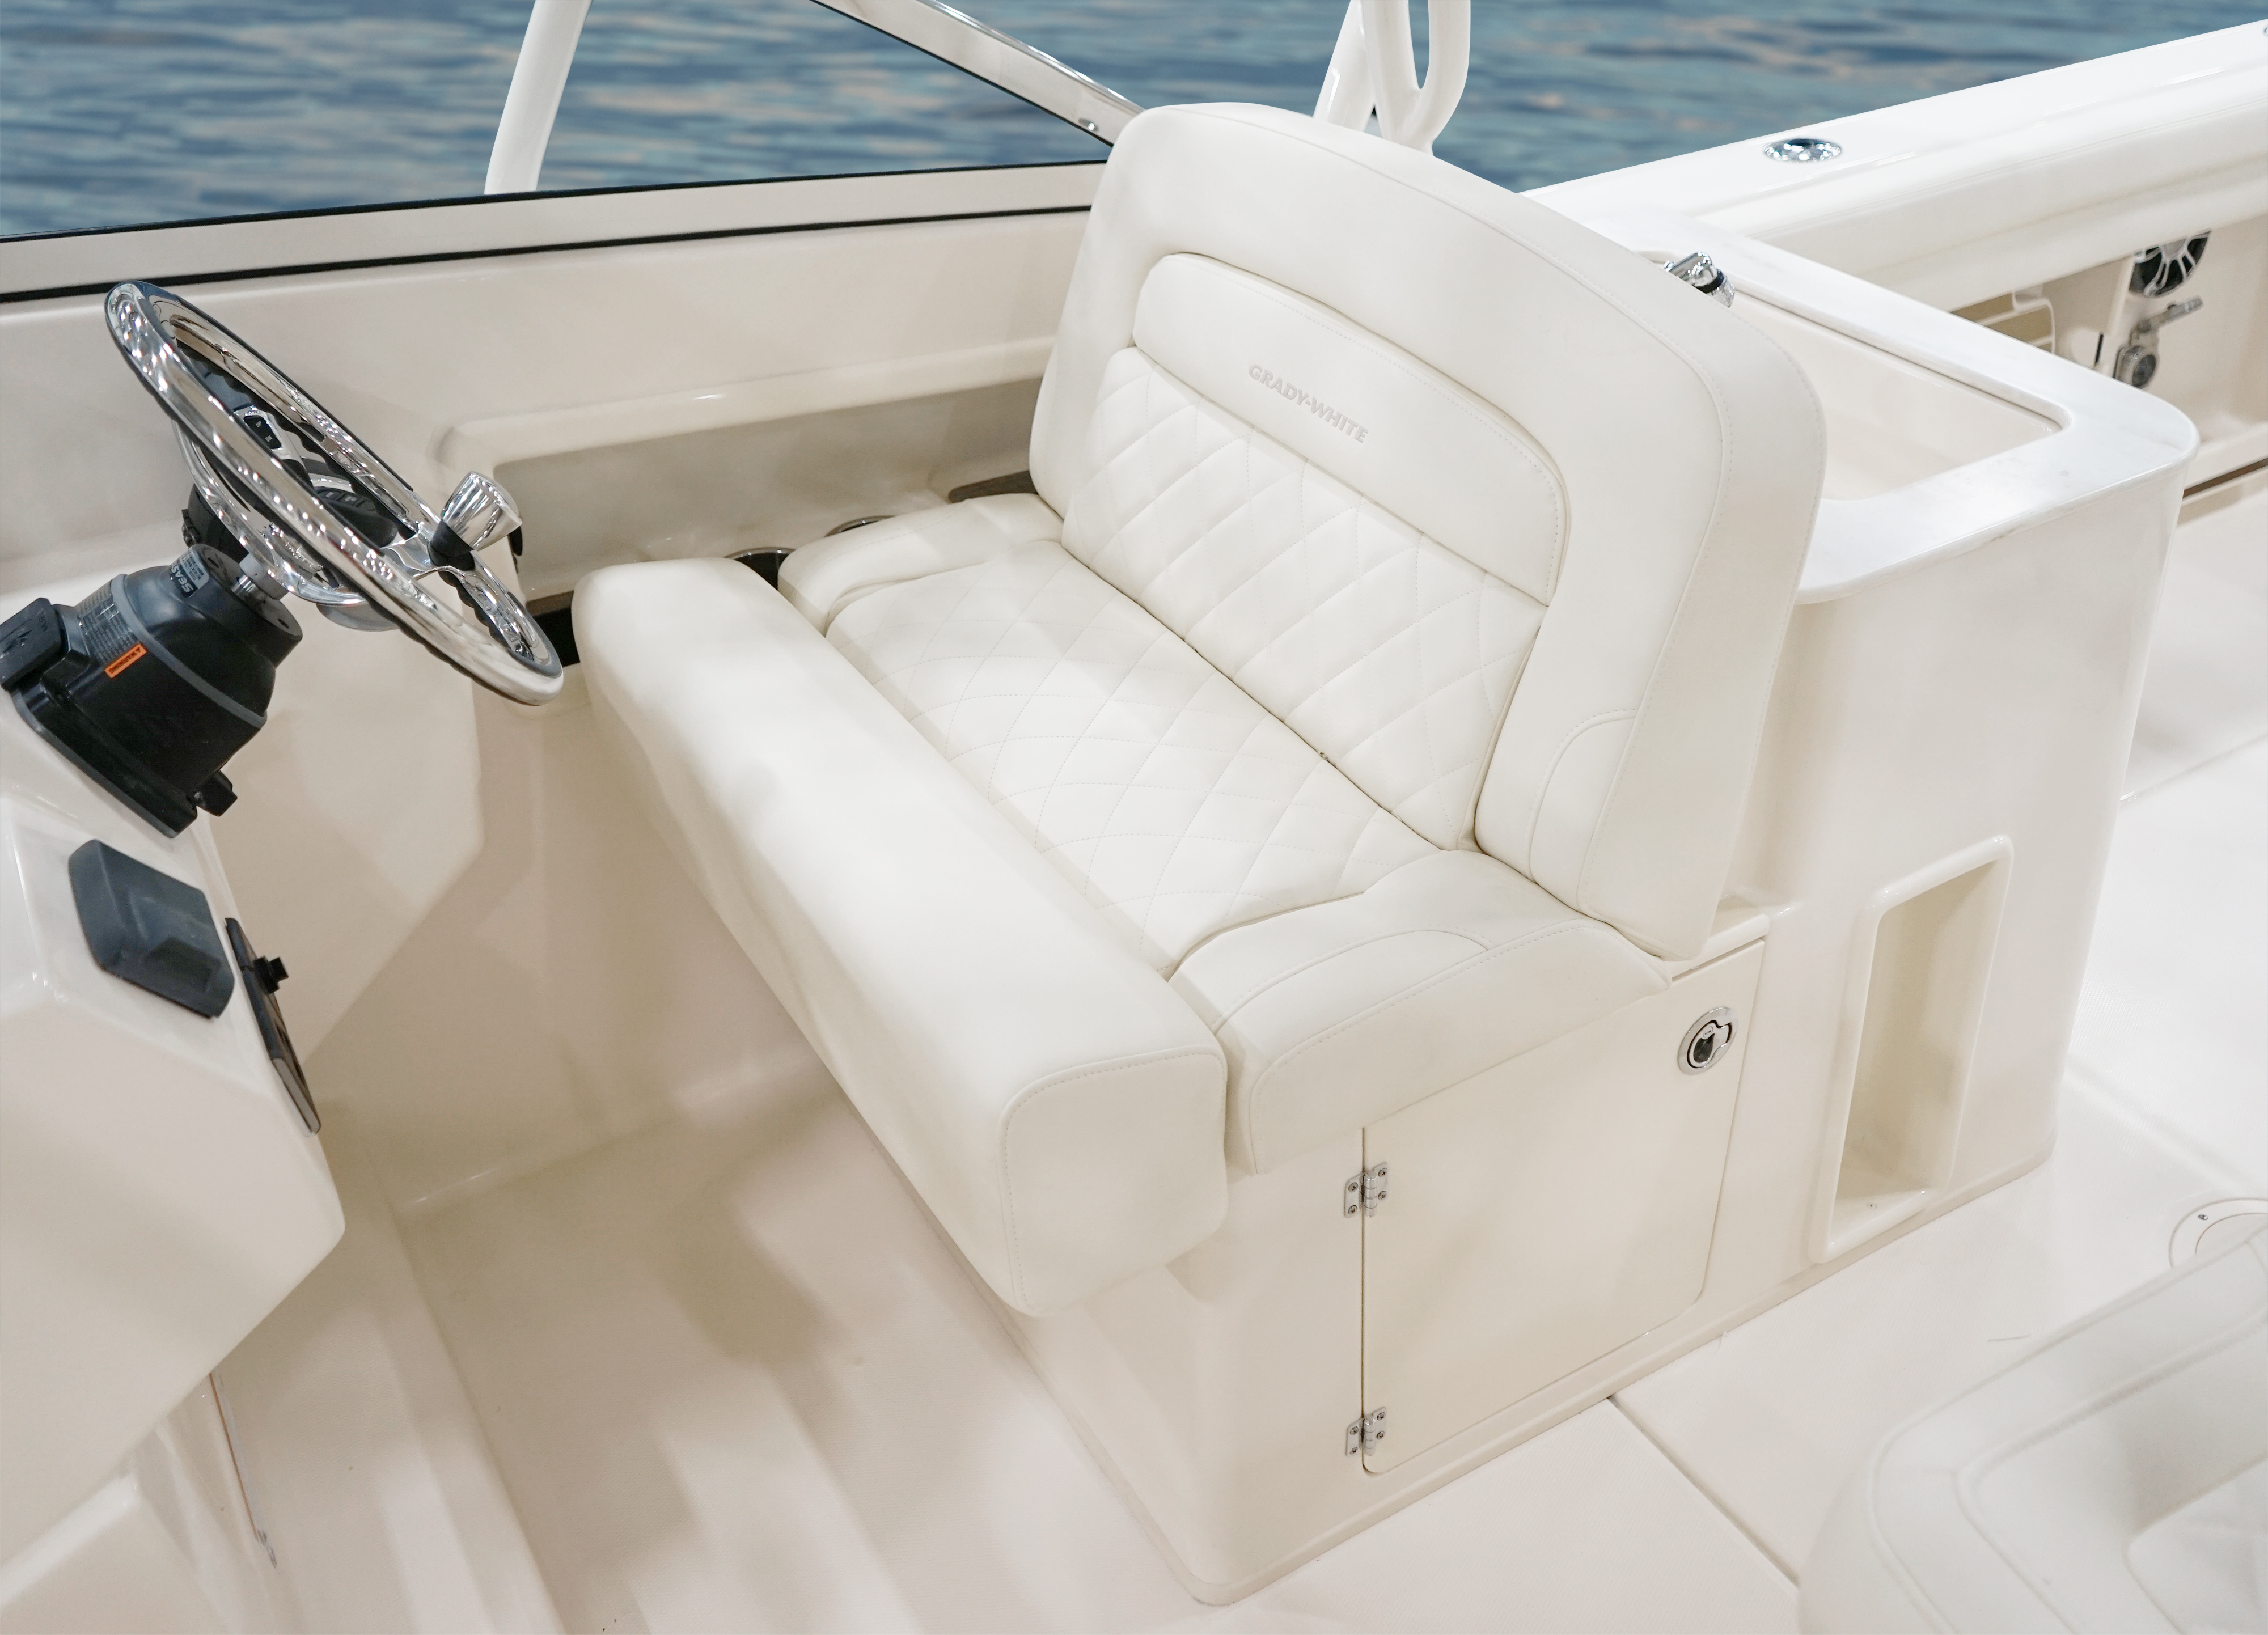 Grady-White Freedom 275 27 foot dual console helm bench seat with flip up bolsters and storage